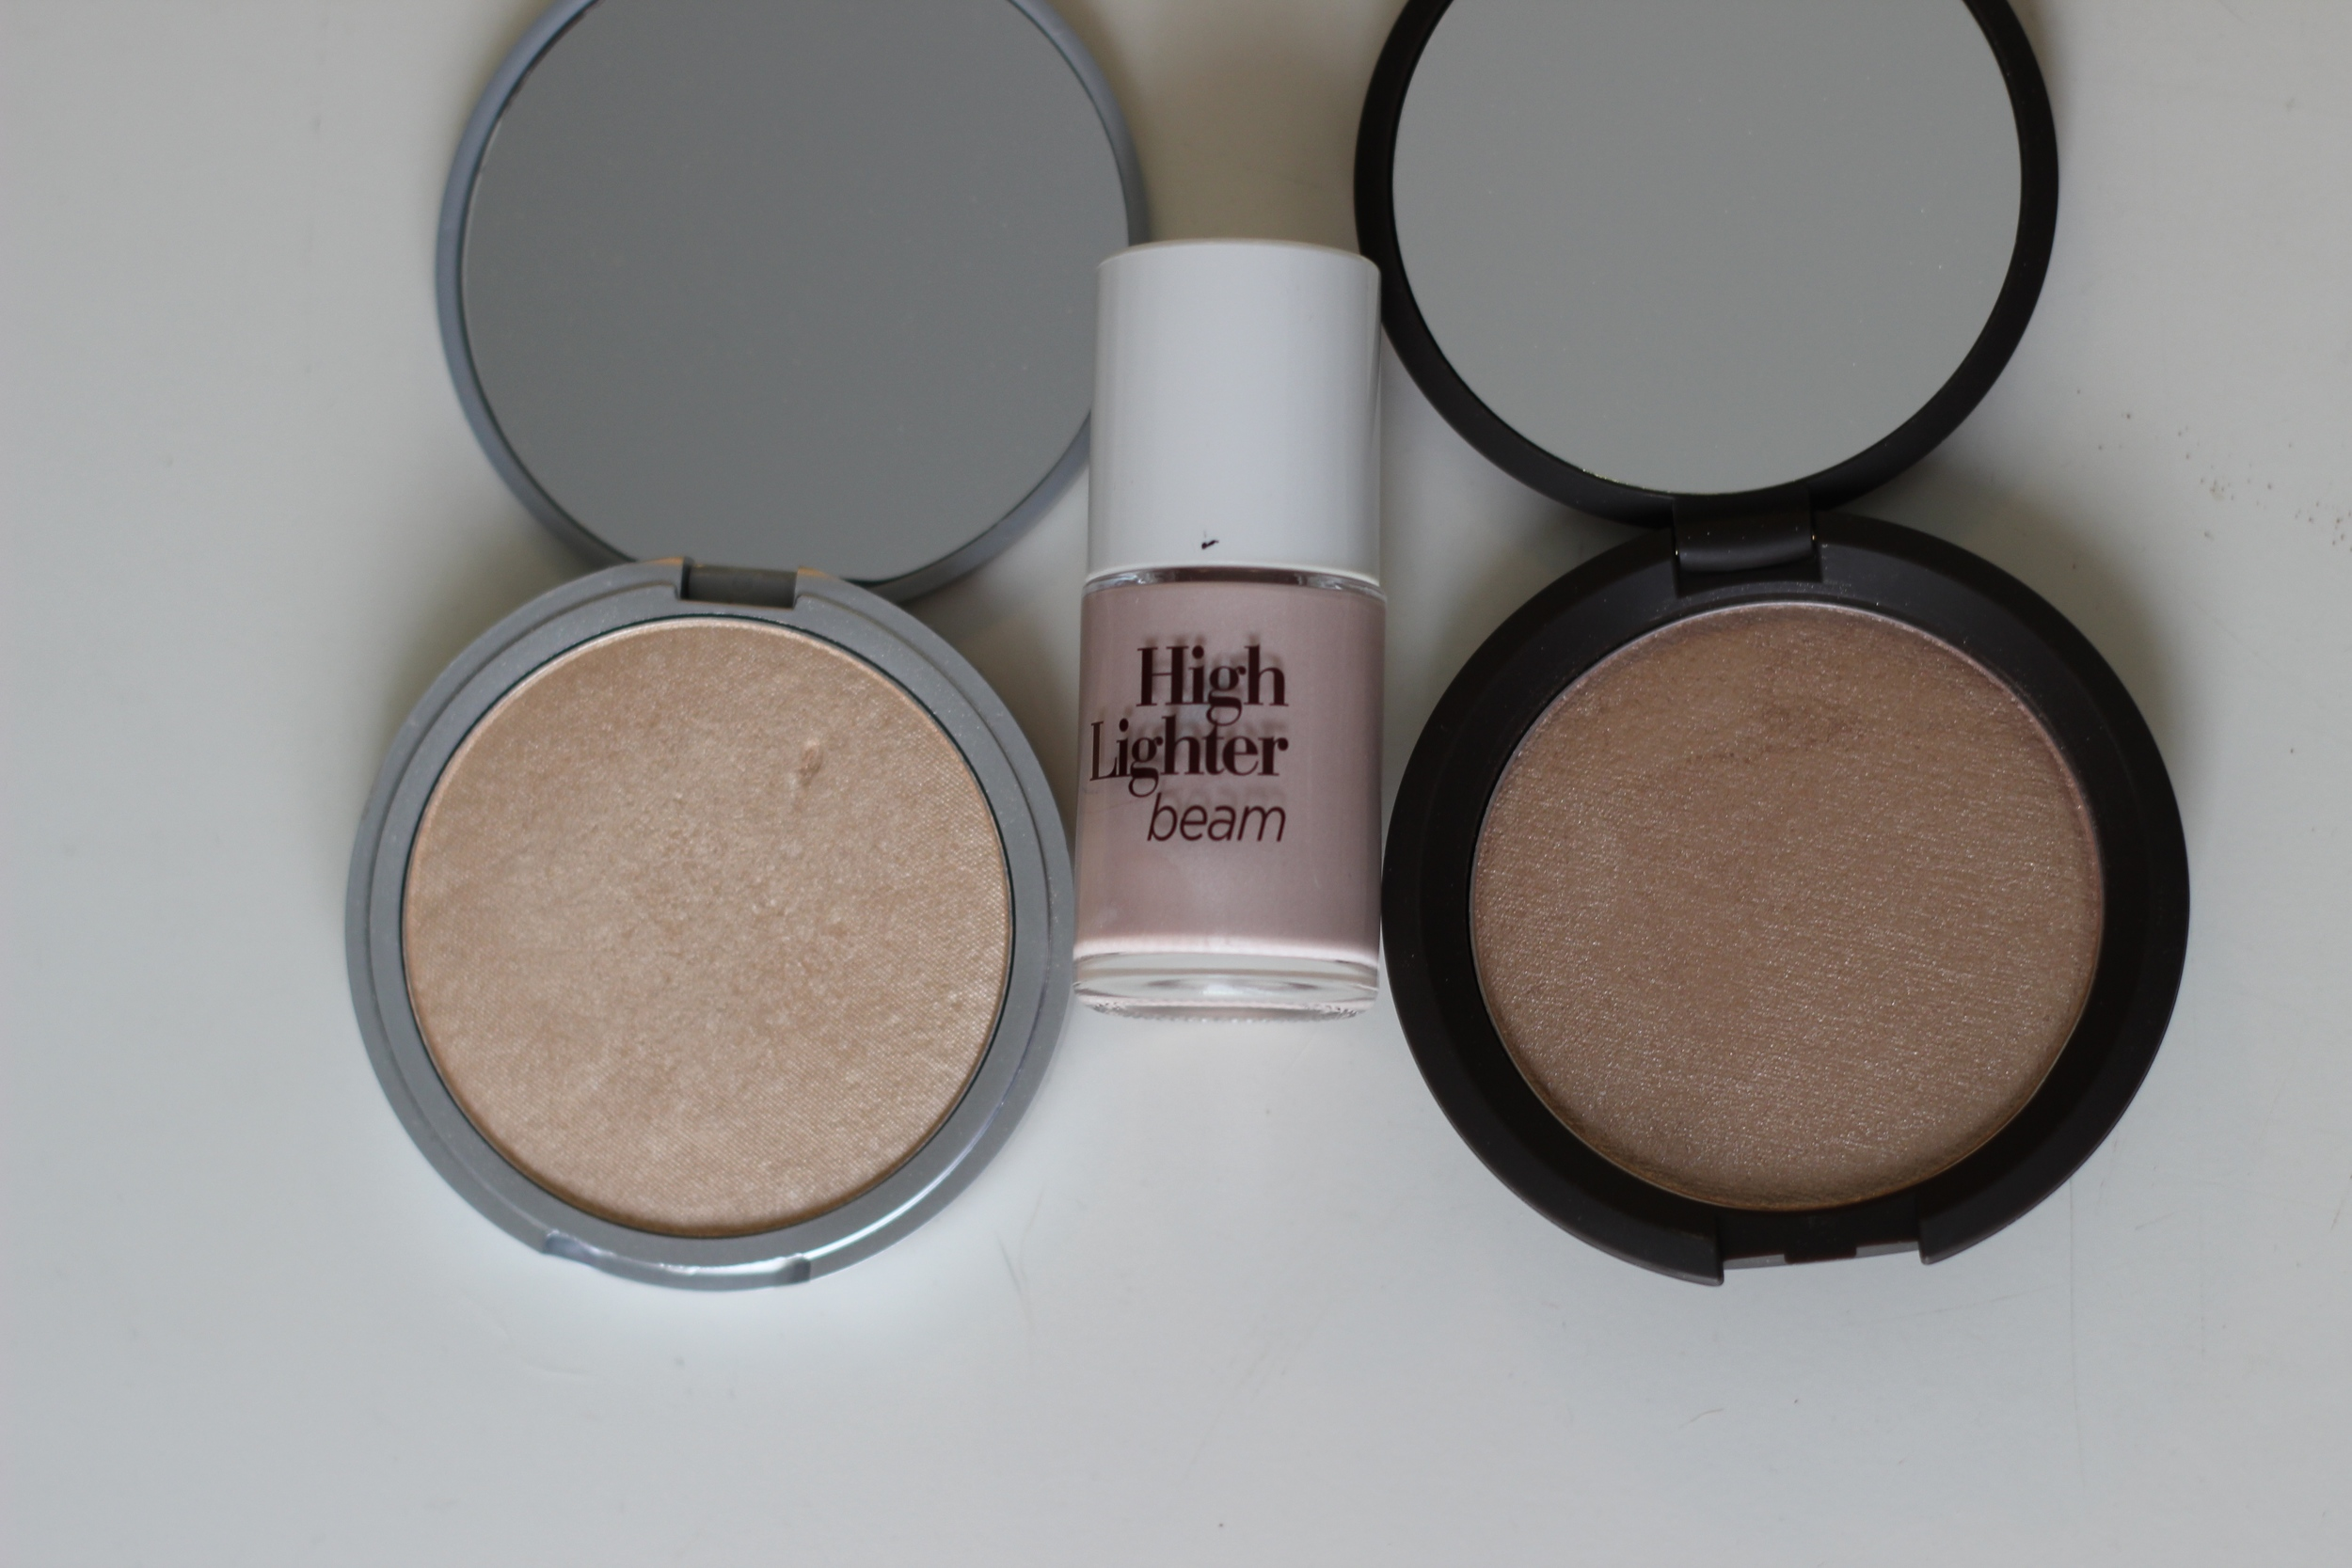 Left to Right: The Balm Mar Lou Manizer, The Face Shop High Lighter Beam, Becca Opal